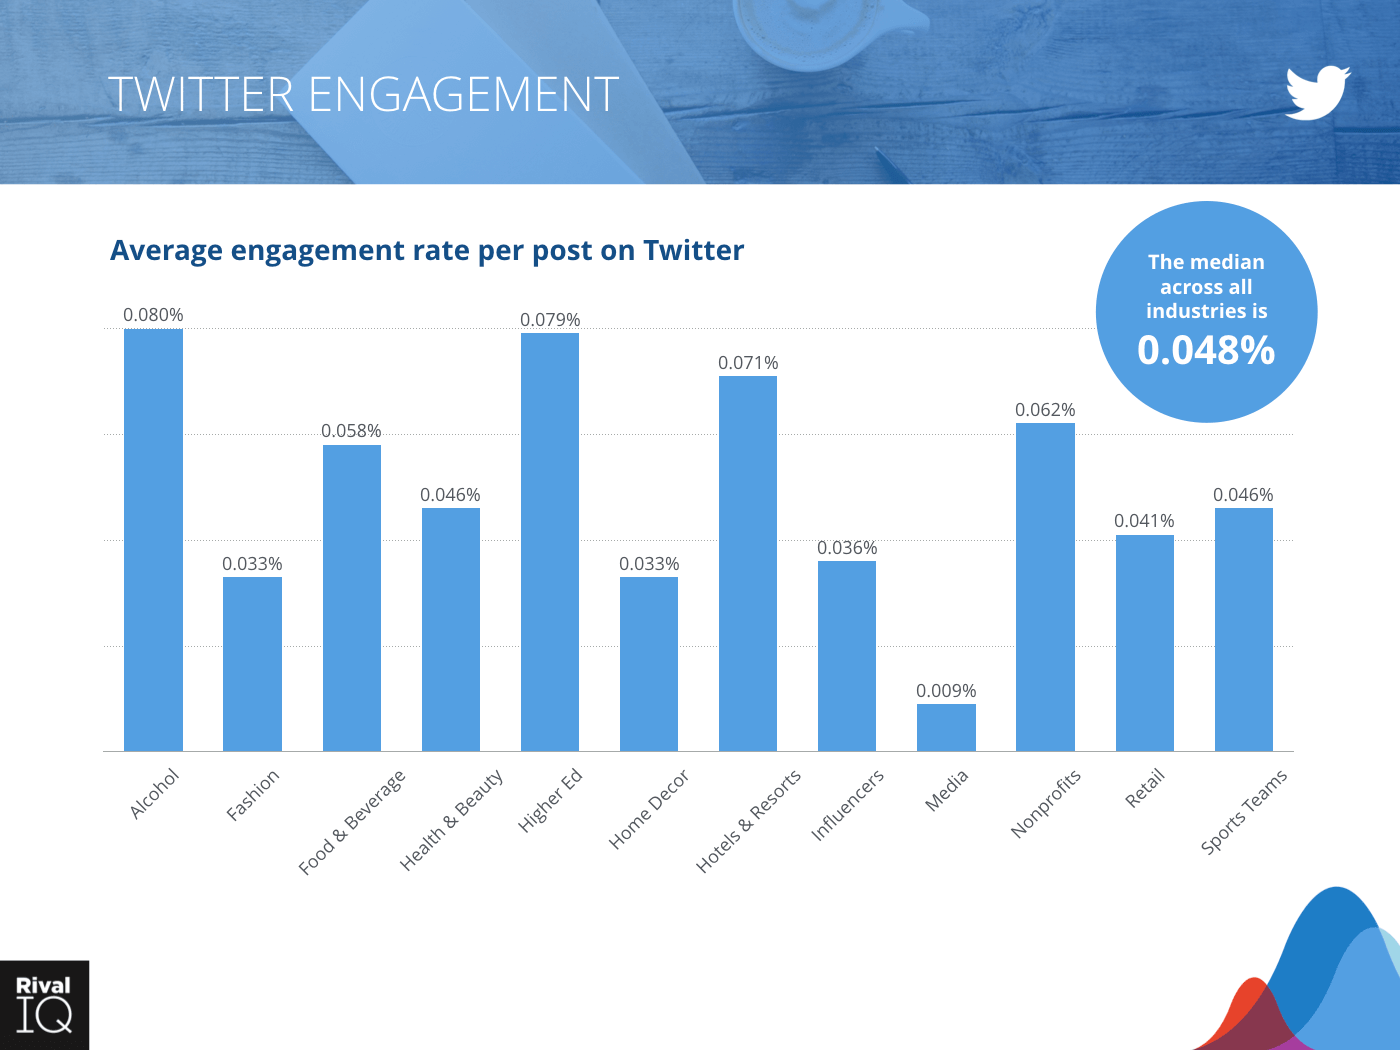 Median engagement rate per post on Twitter across all industries